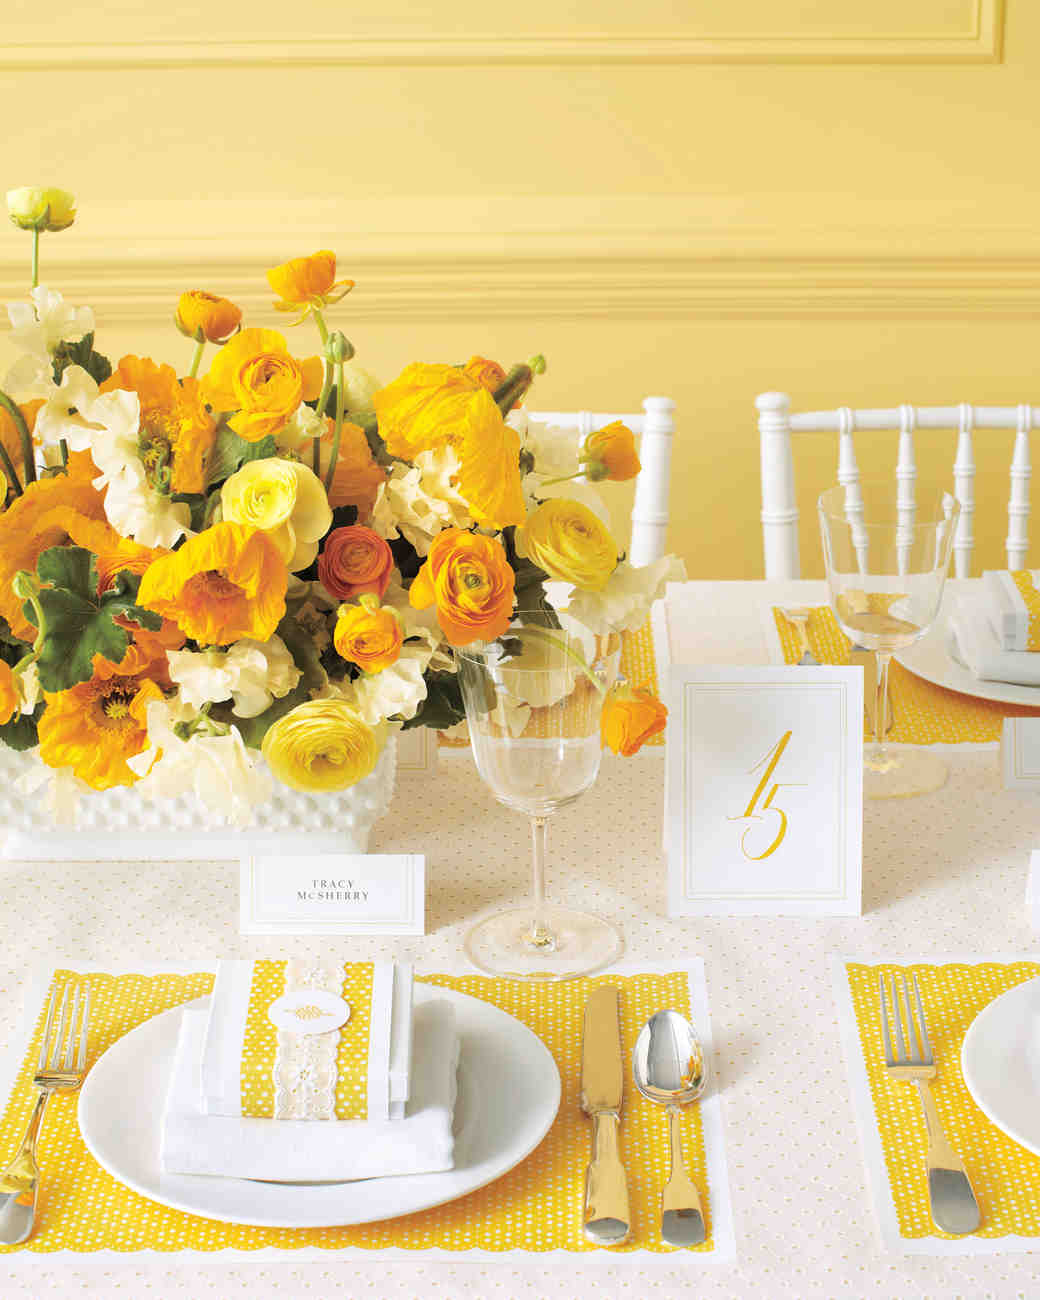 Tabletop Wedding-Decor Clip Art And Templates